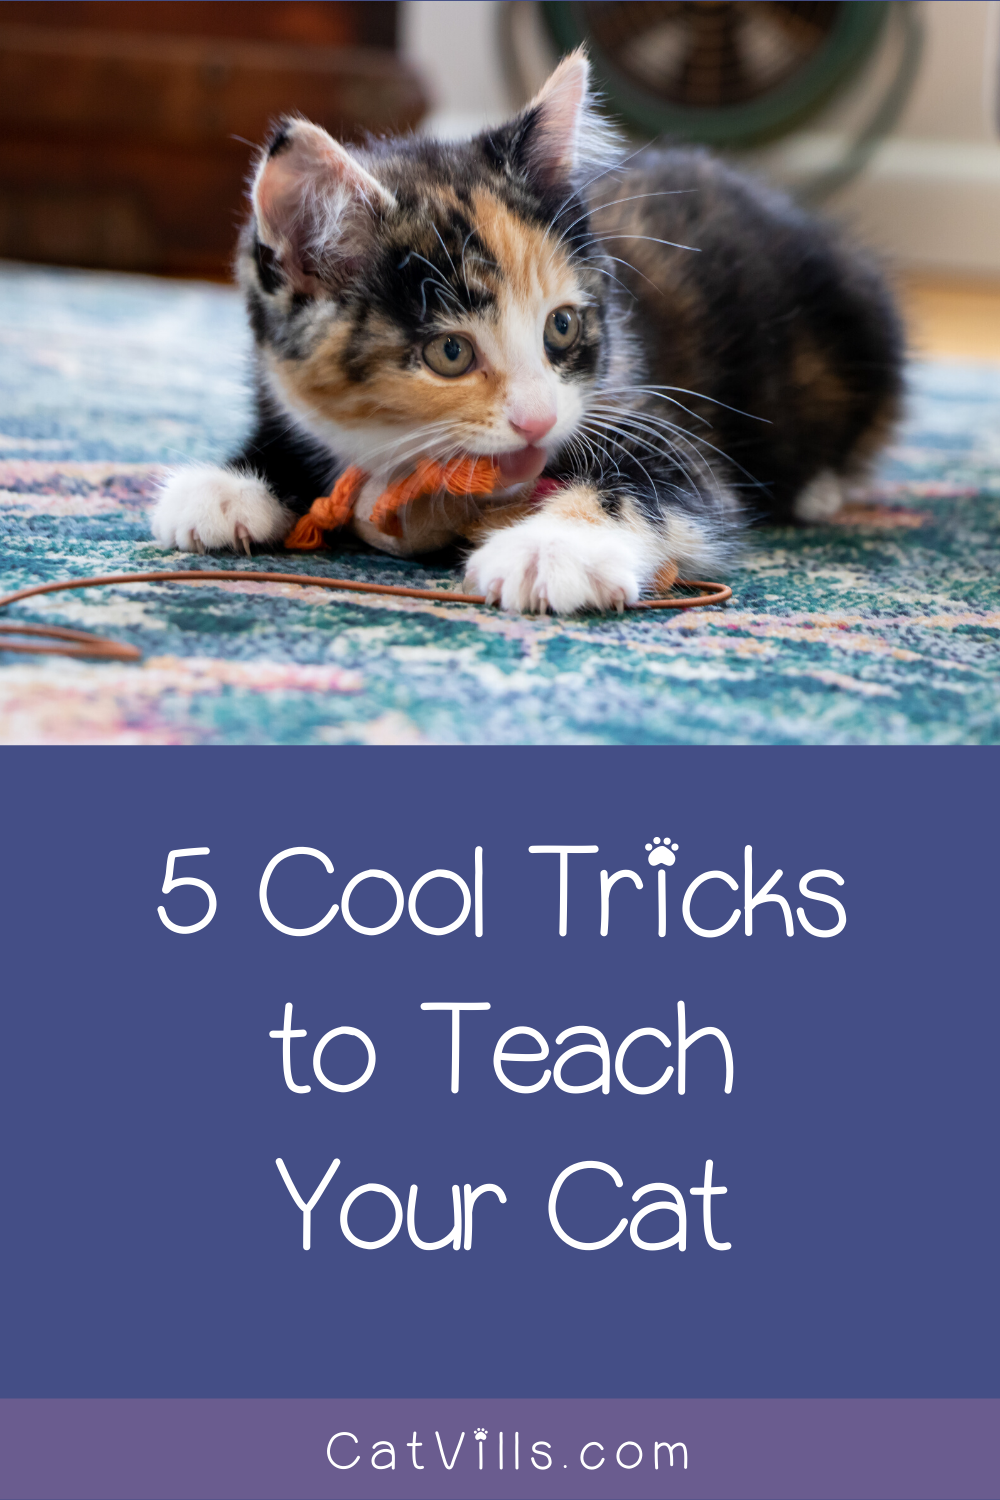 5 Incredibly Impressive Tricks To Teach Your Cat Catvills In 2020 Cat Training Dog Training Cat Hacks